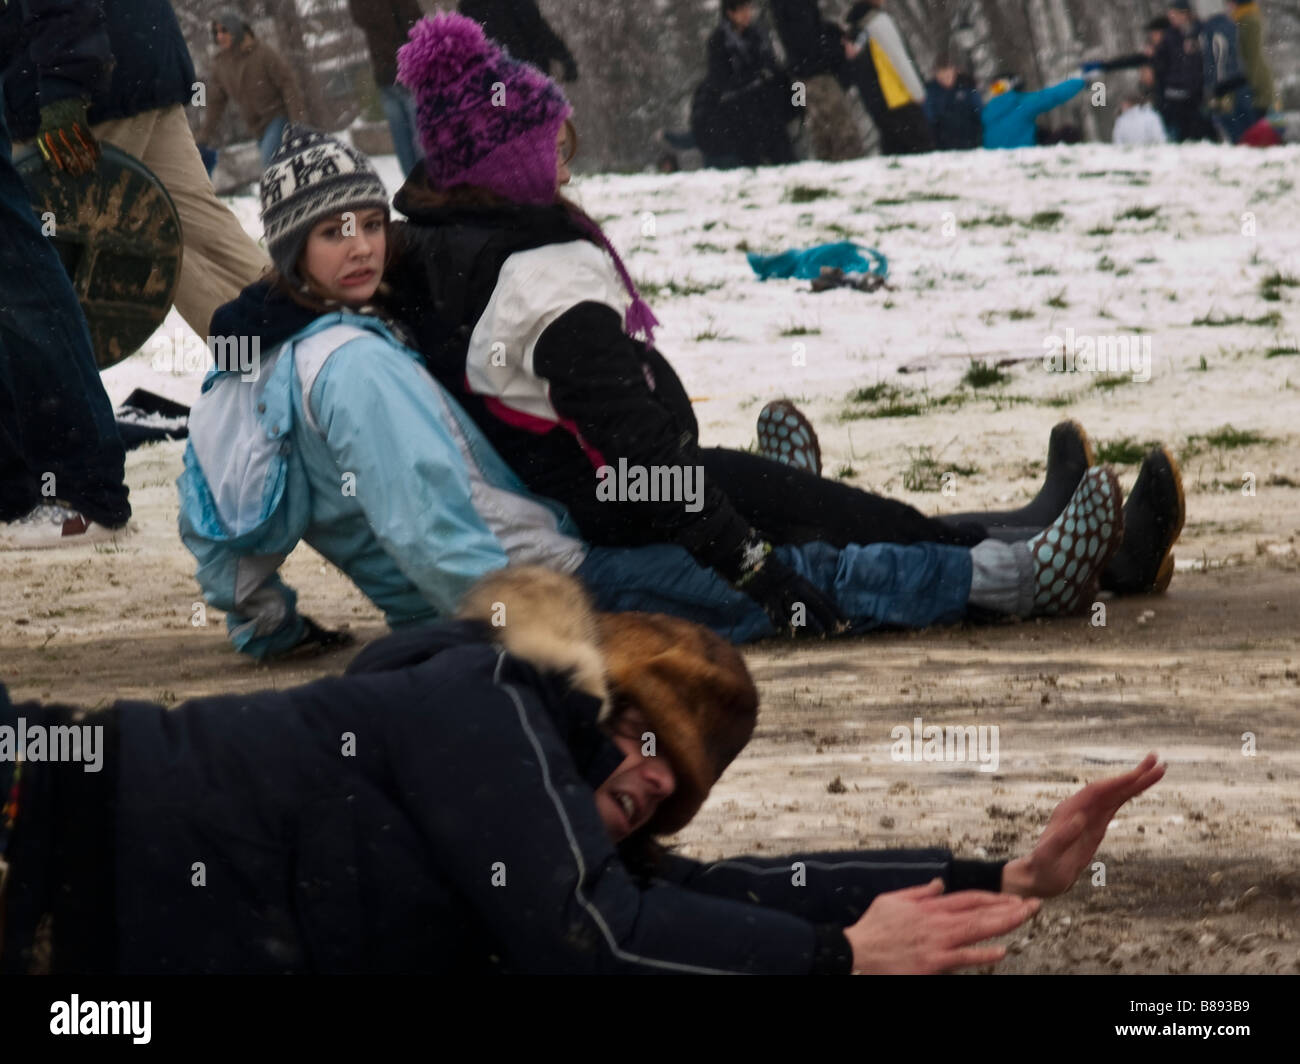 woman pulls a face as man falls sledging - Stock Image